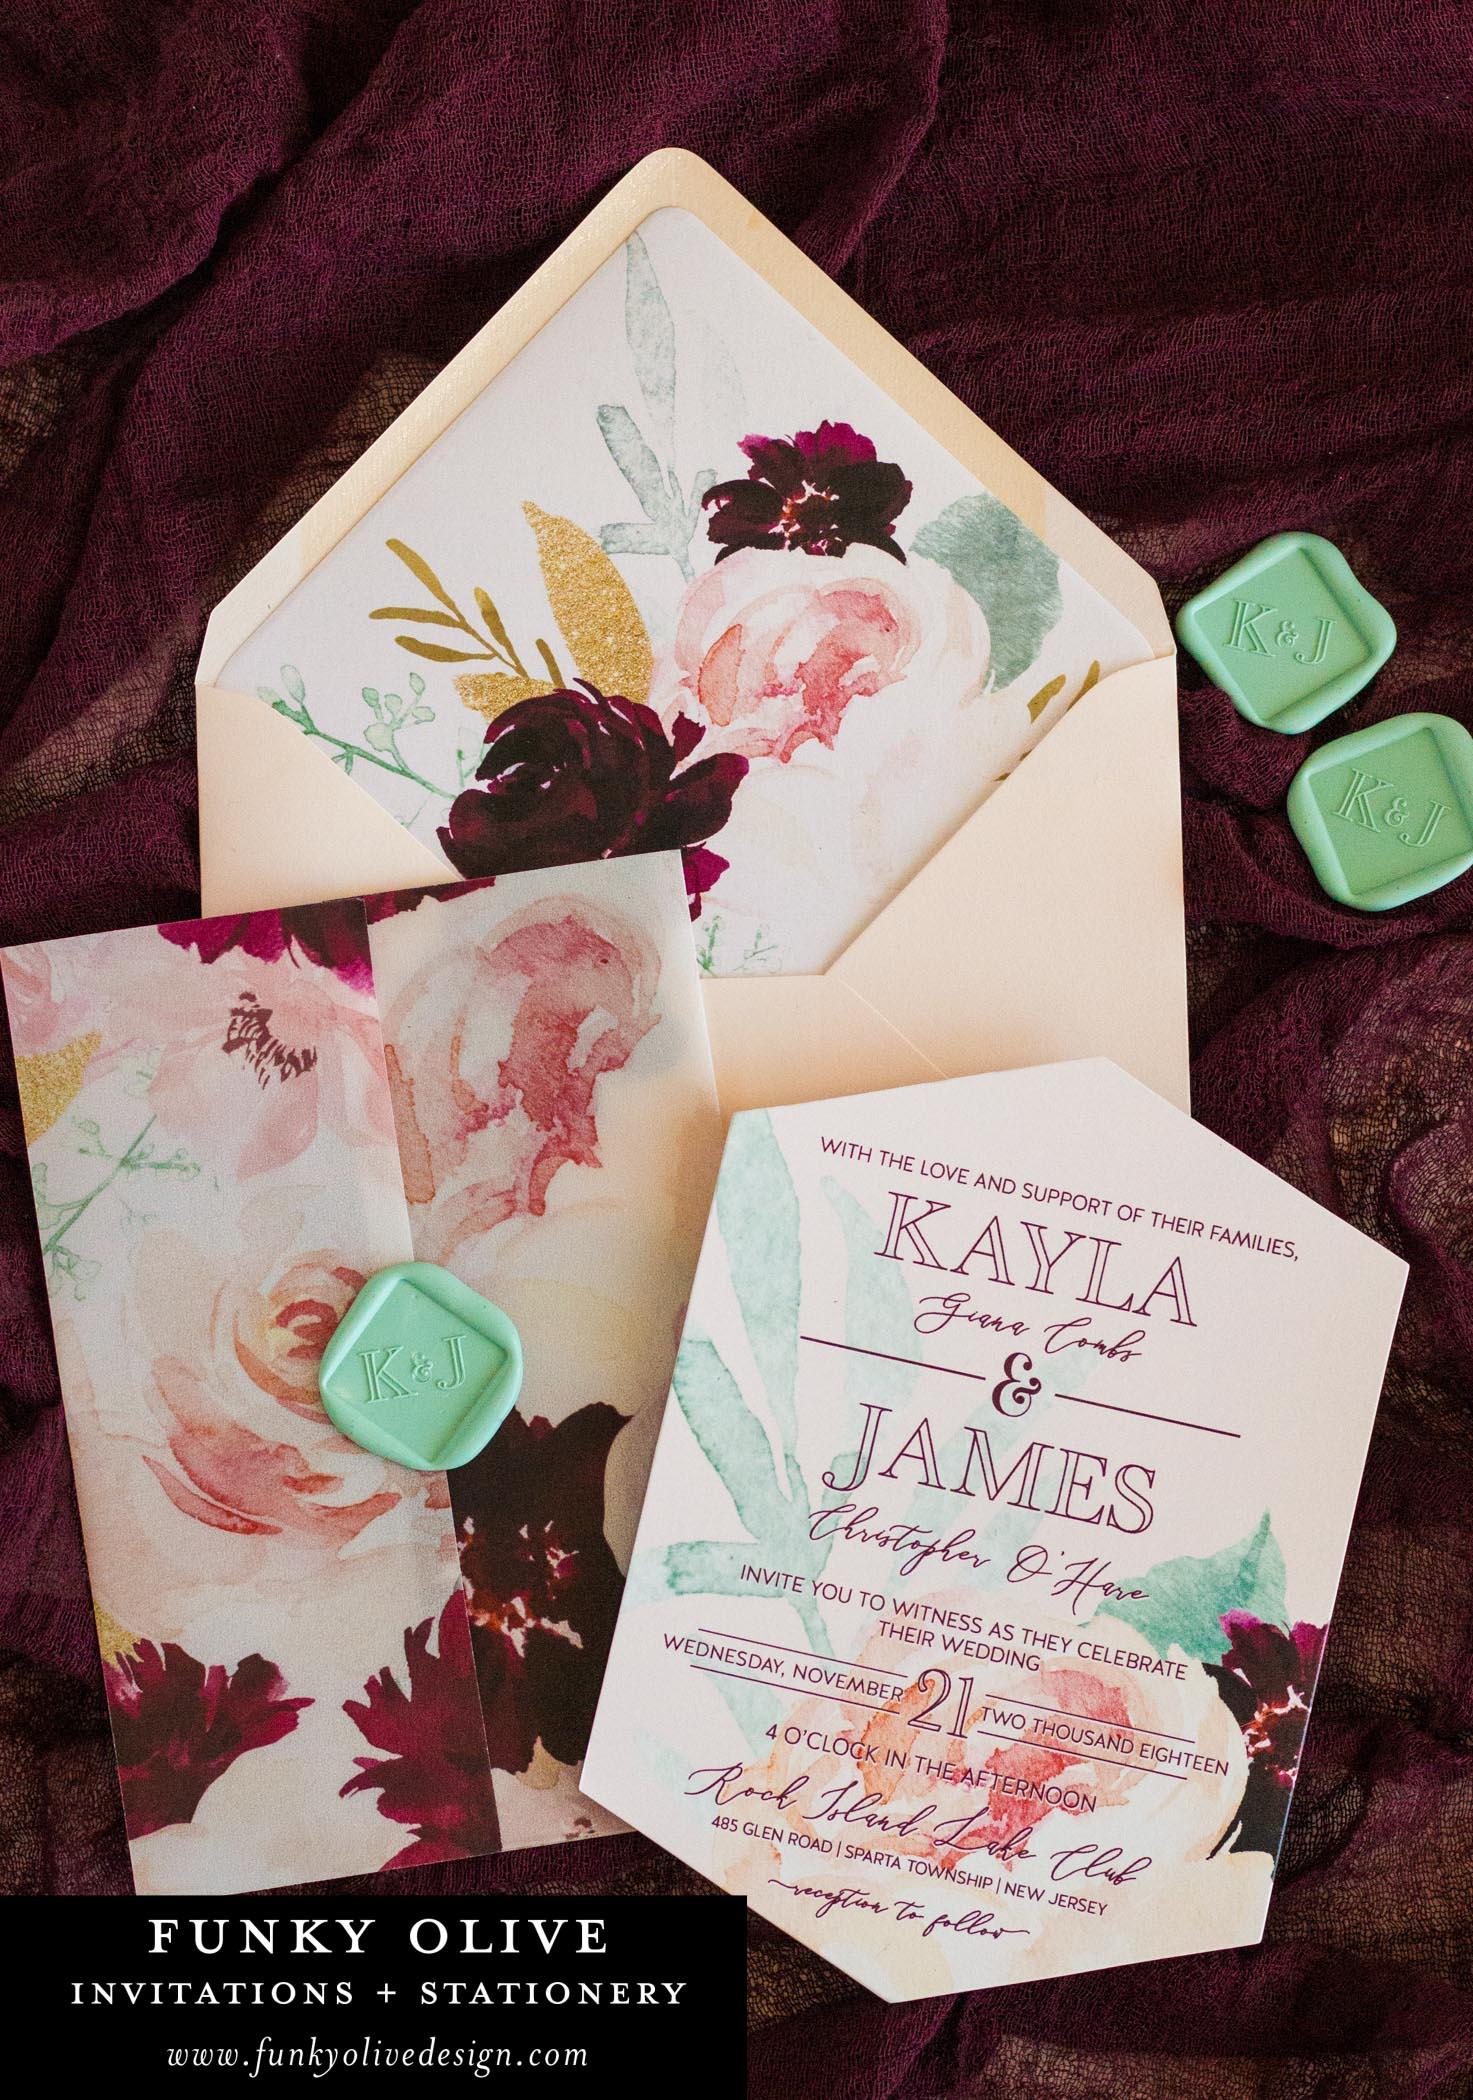 A mint green wax seal in a diamond shape? You know it! Checking off two style options in one design, Kayla will forever have our hearts!